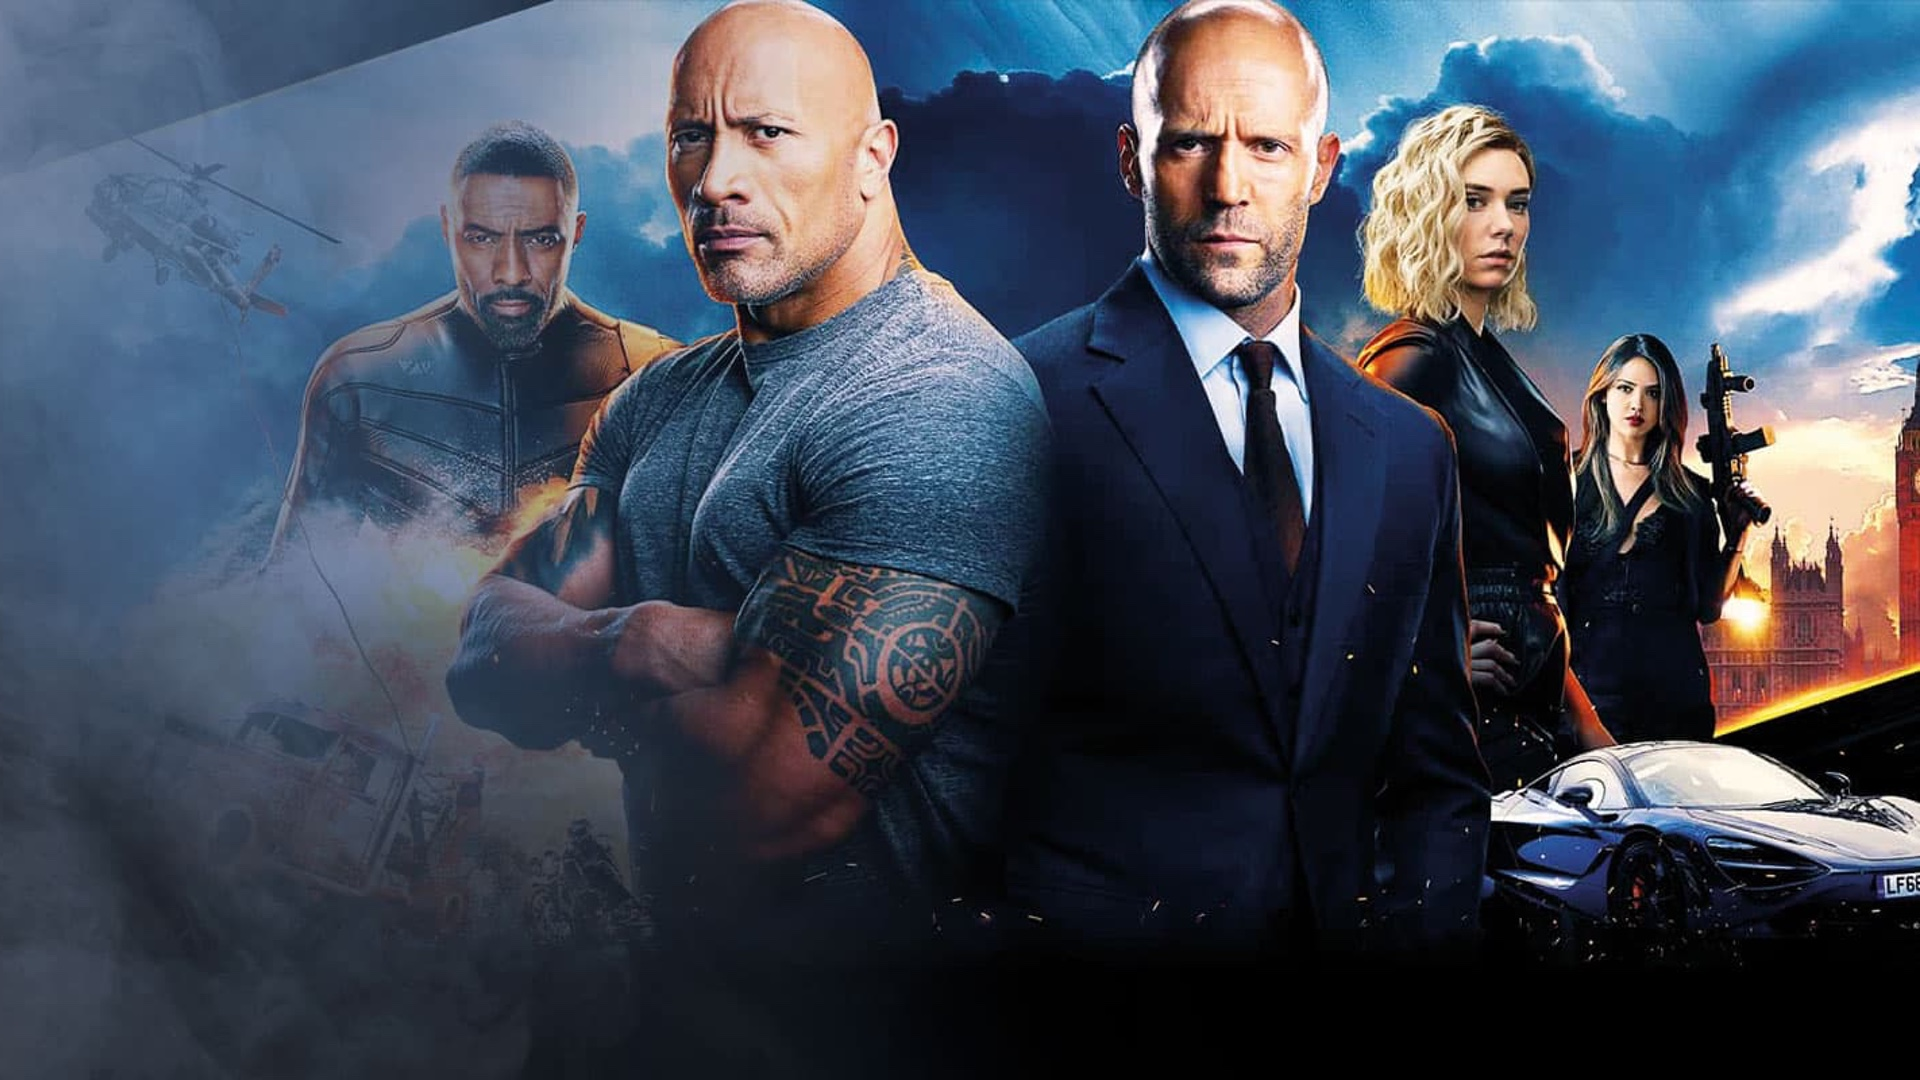 Movie Review - Hobbs & Shaw